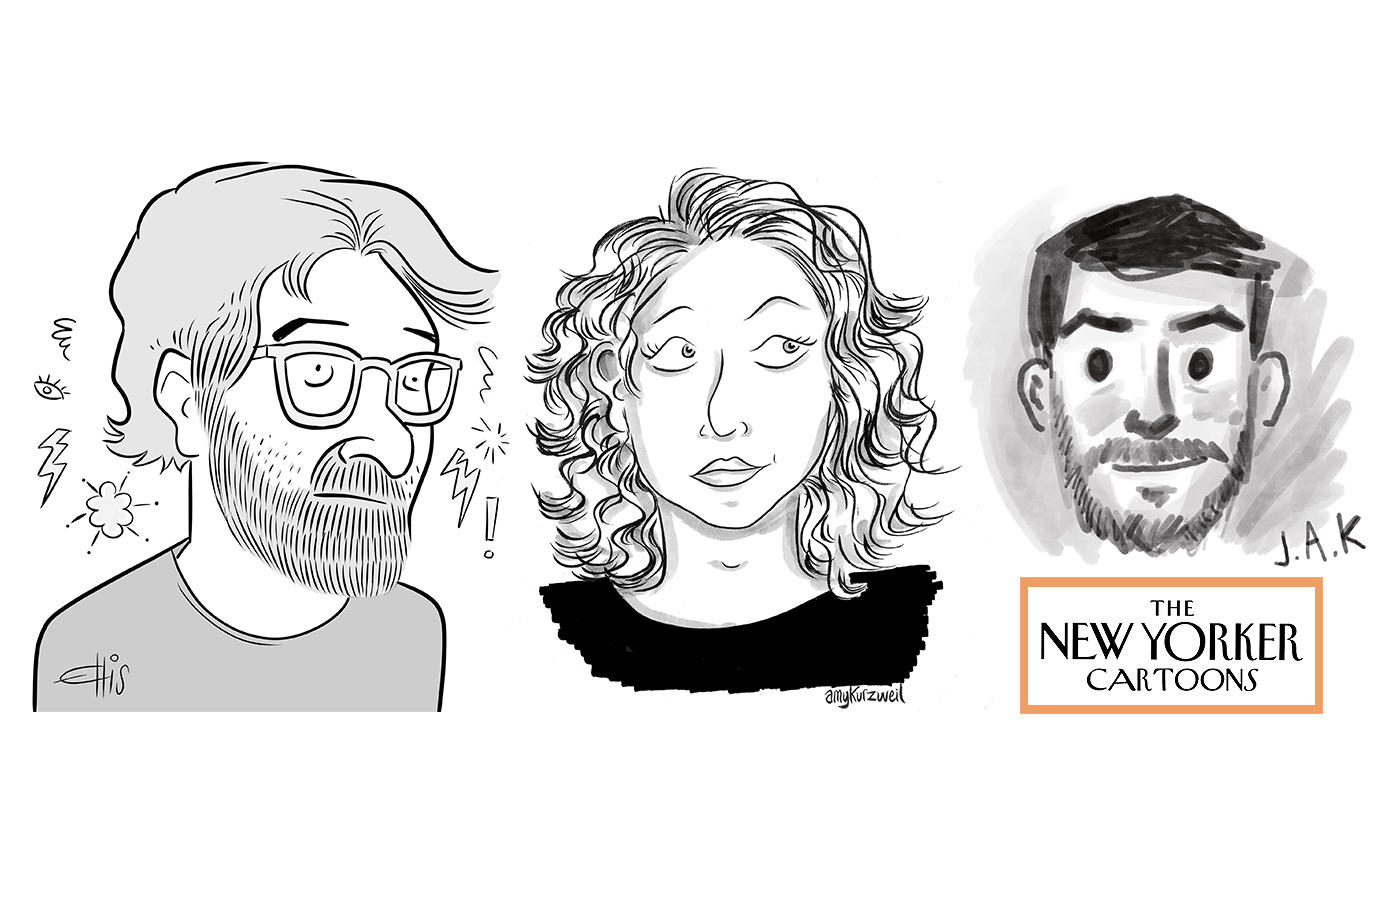 Catapult  classes: Amy Kurzweil, 1-Day Open-Genre Bootcamp: The Art of the Cartoon, Open-Genre, Bootcamp